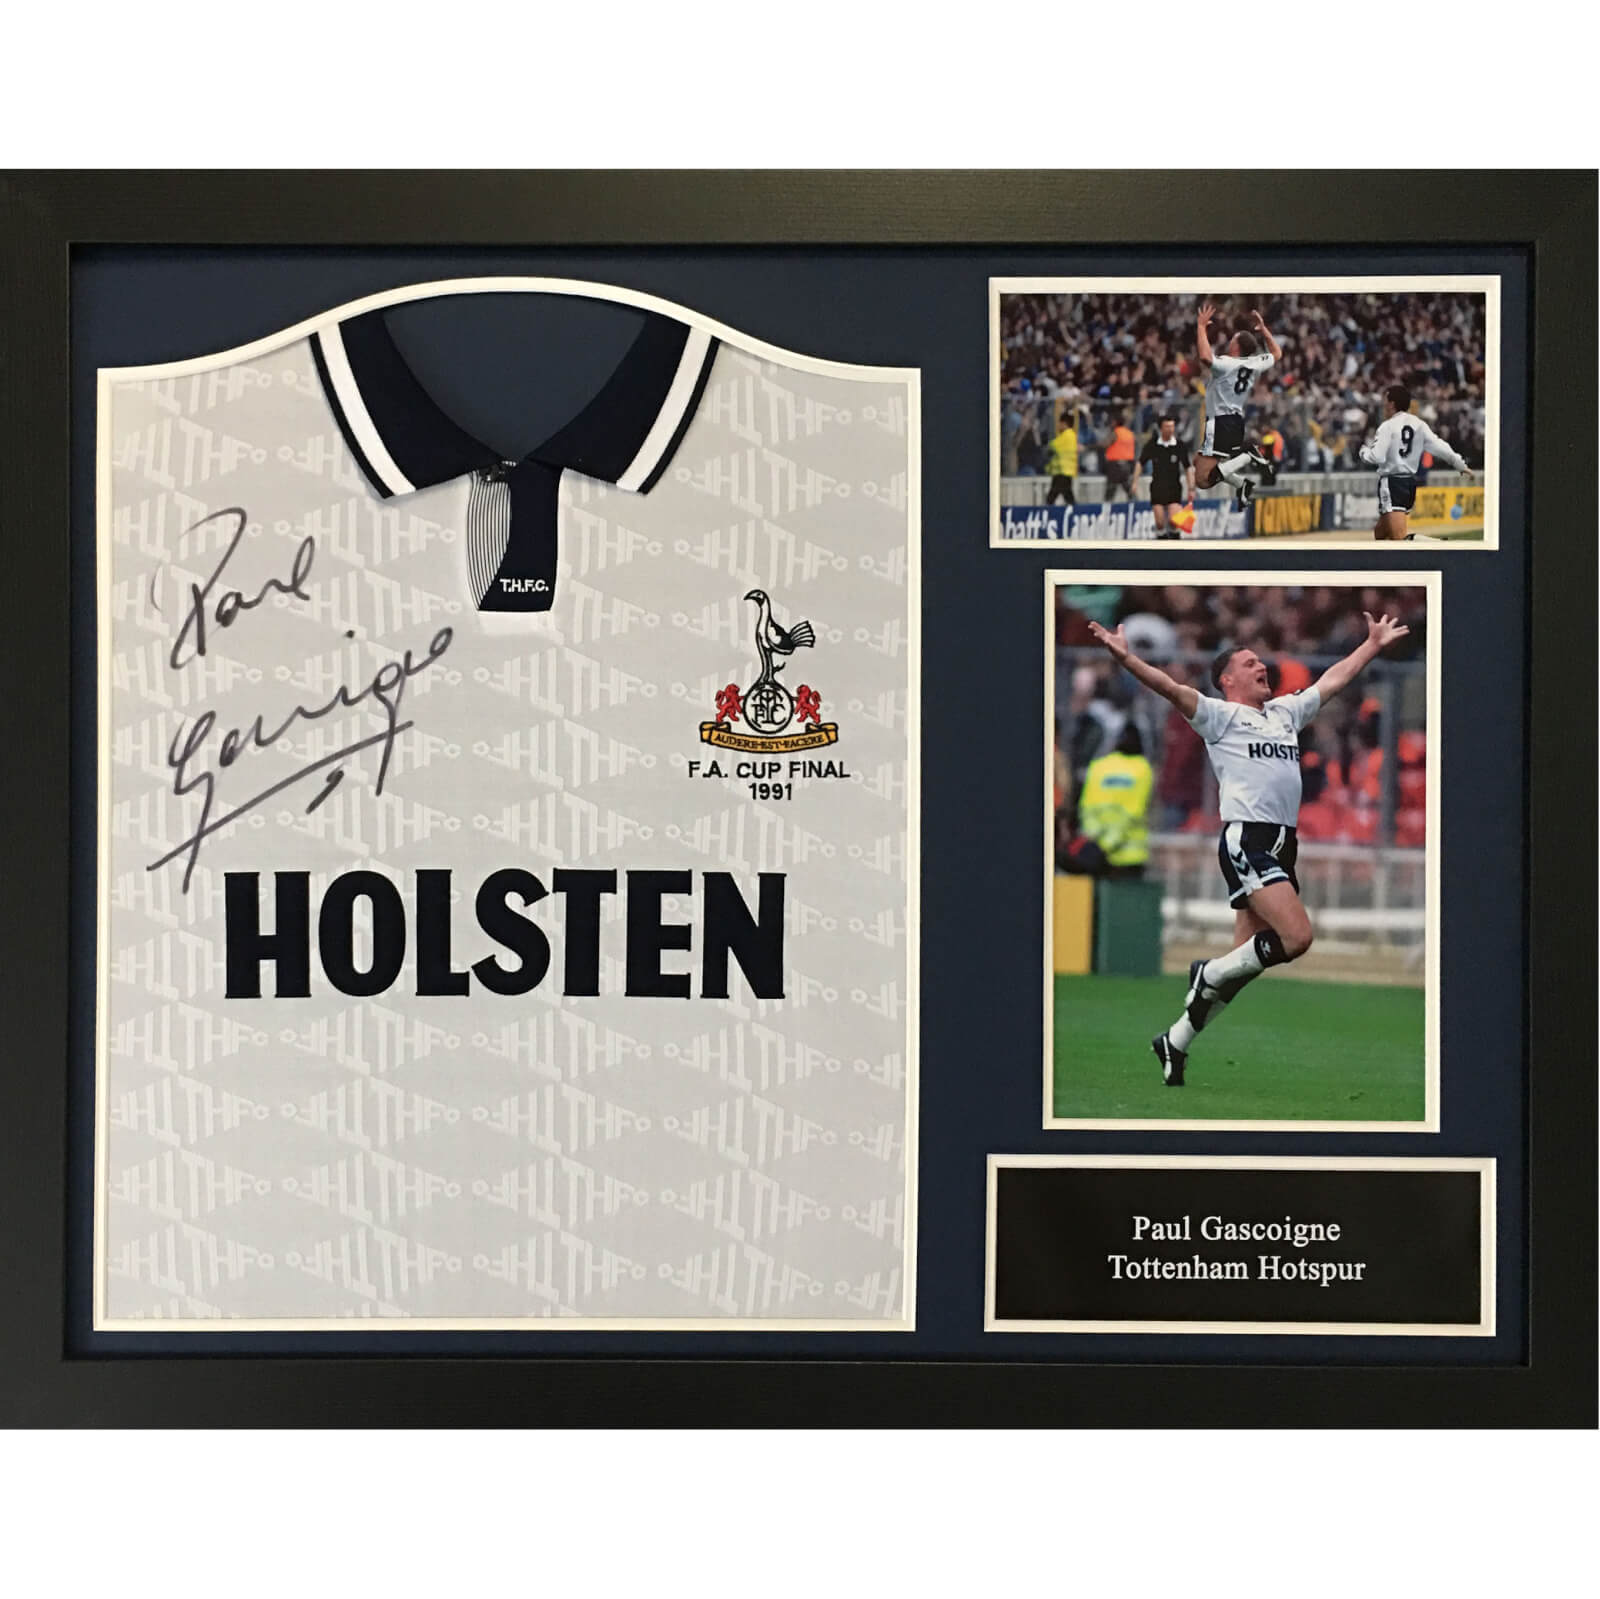 Paul Gascoigne Signed and Framed Tottenham Hotspurs Shirt